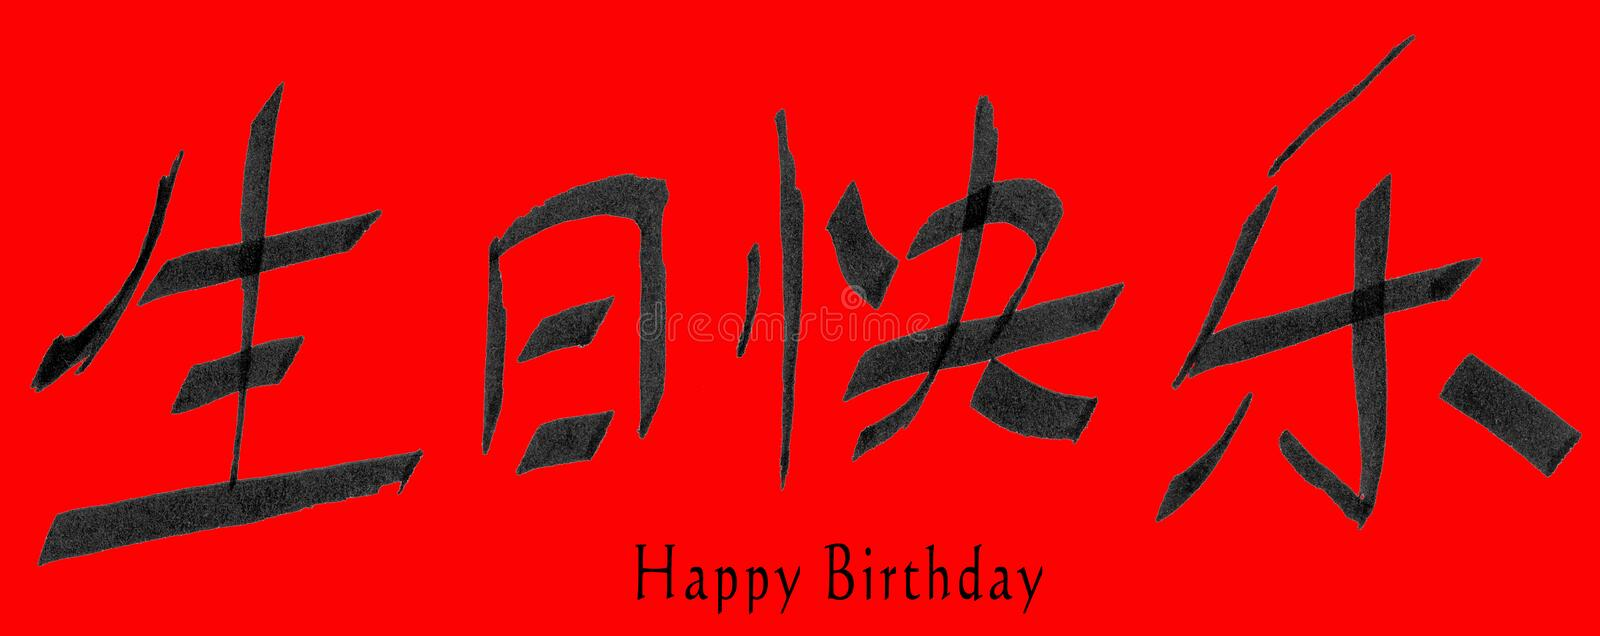 Happy birthday in chinese stock illustration illustration of download happy birthday in chinese stock illustration illustration of chinese 2412551 m4hsunfo